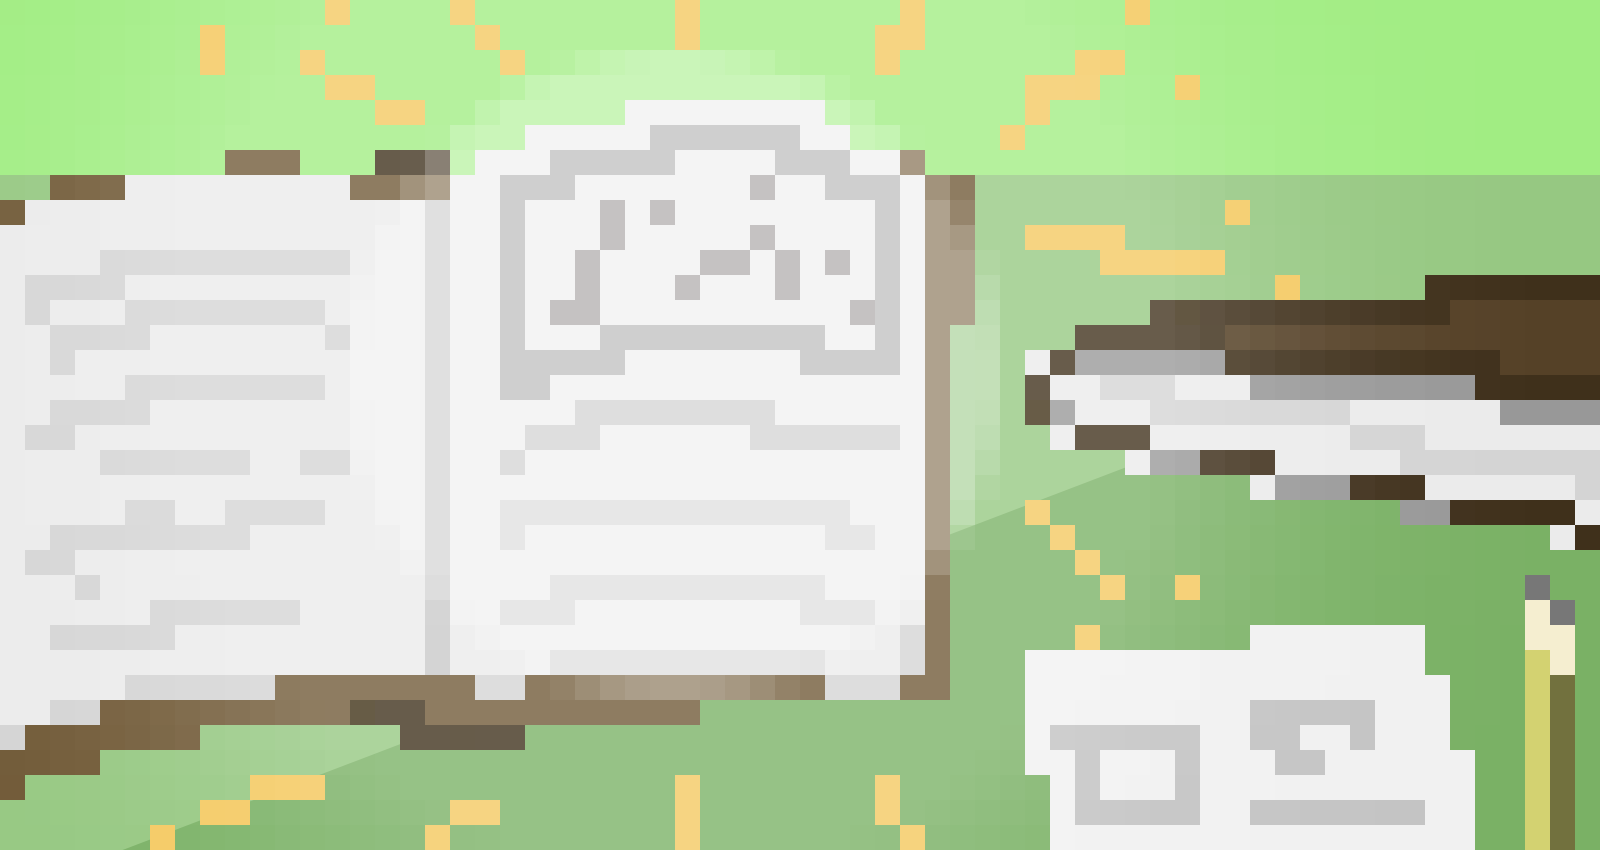 A pixel-art graphic of an open book on a green background